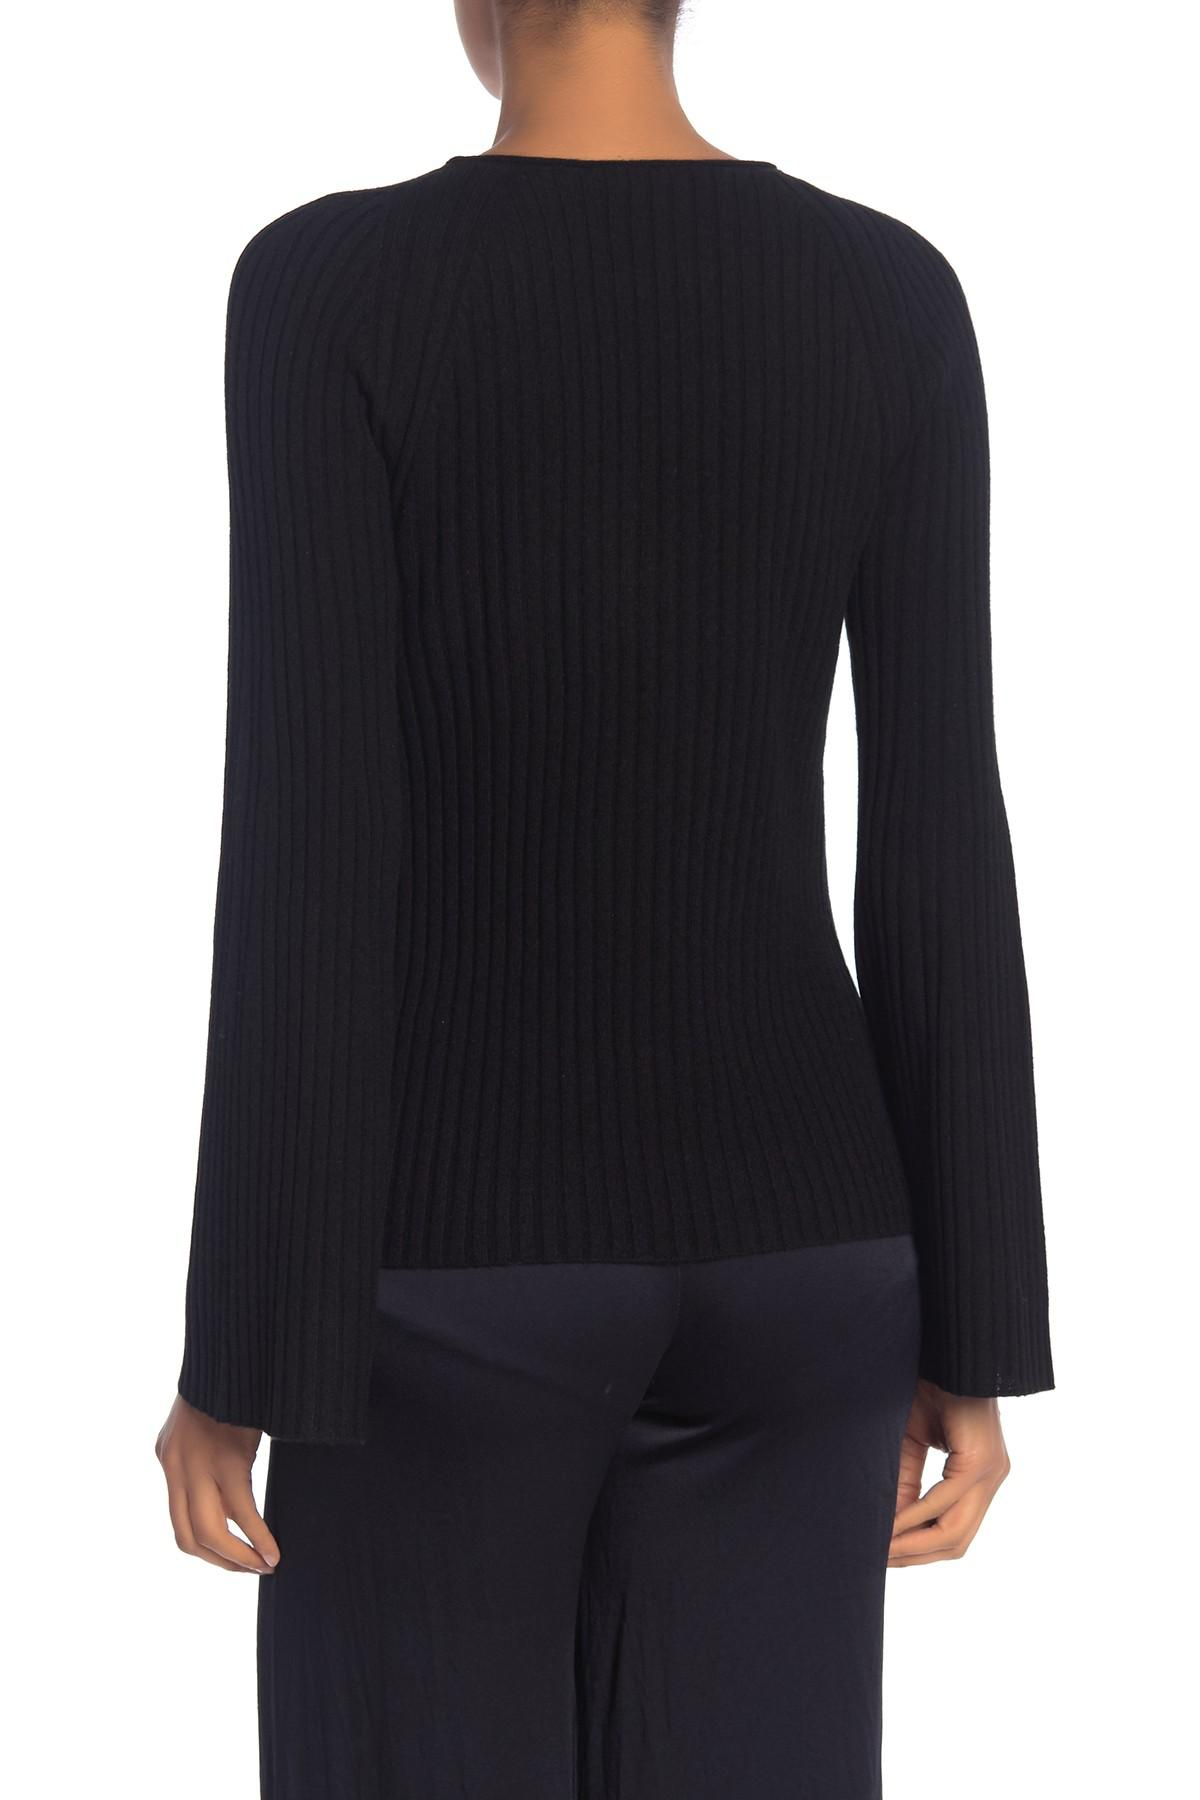 bf54bbefbb3 Vince - Black Ribbed Cutout Cashmere Sweater - Lyst. View fullscreen